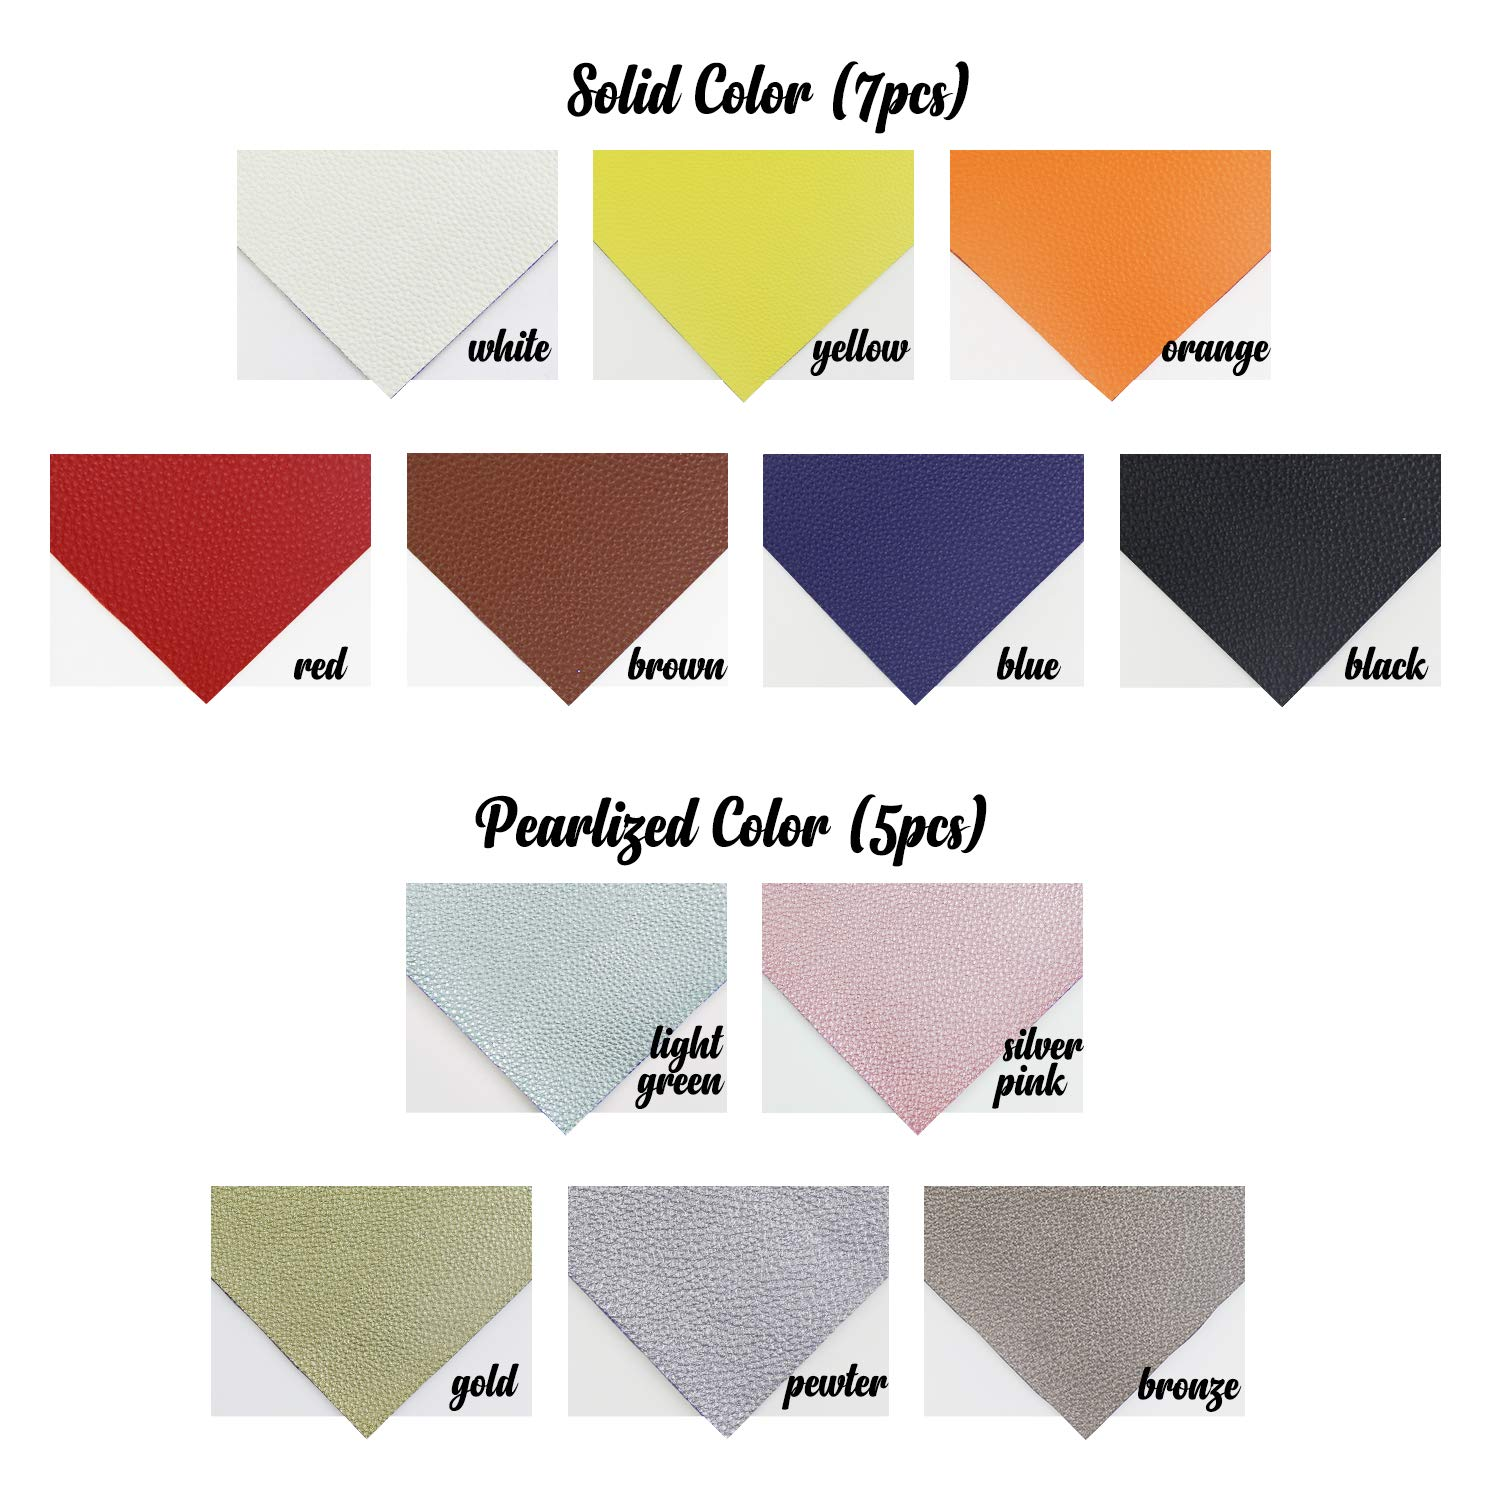 Litchi Faux Leather Sheets, SIMPZIA NO Odor 11.8'' x 7.8'' PU Synthetic Leather Cotton Backed, 1.2mm Easy Cut Fabric Leather with 12PCS Pearlized and Solid Colors for Earrings, DIY Craft Projects by SIMPZIA (Image #2)